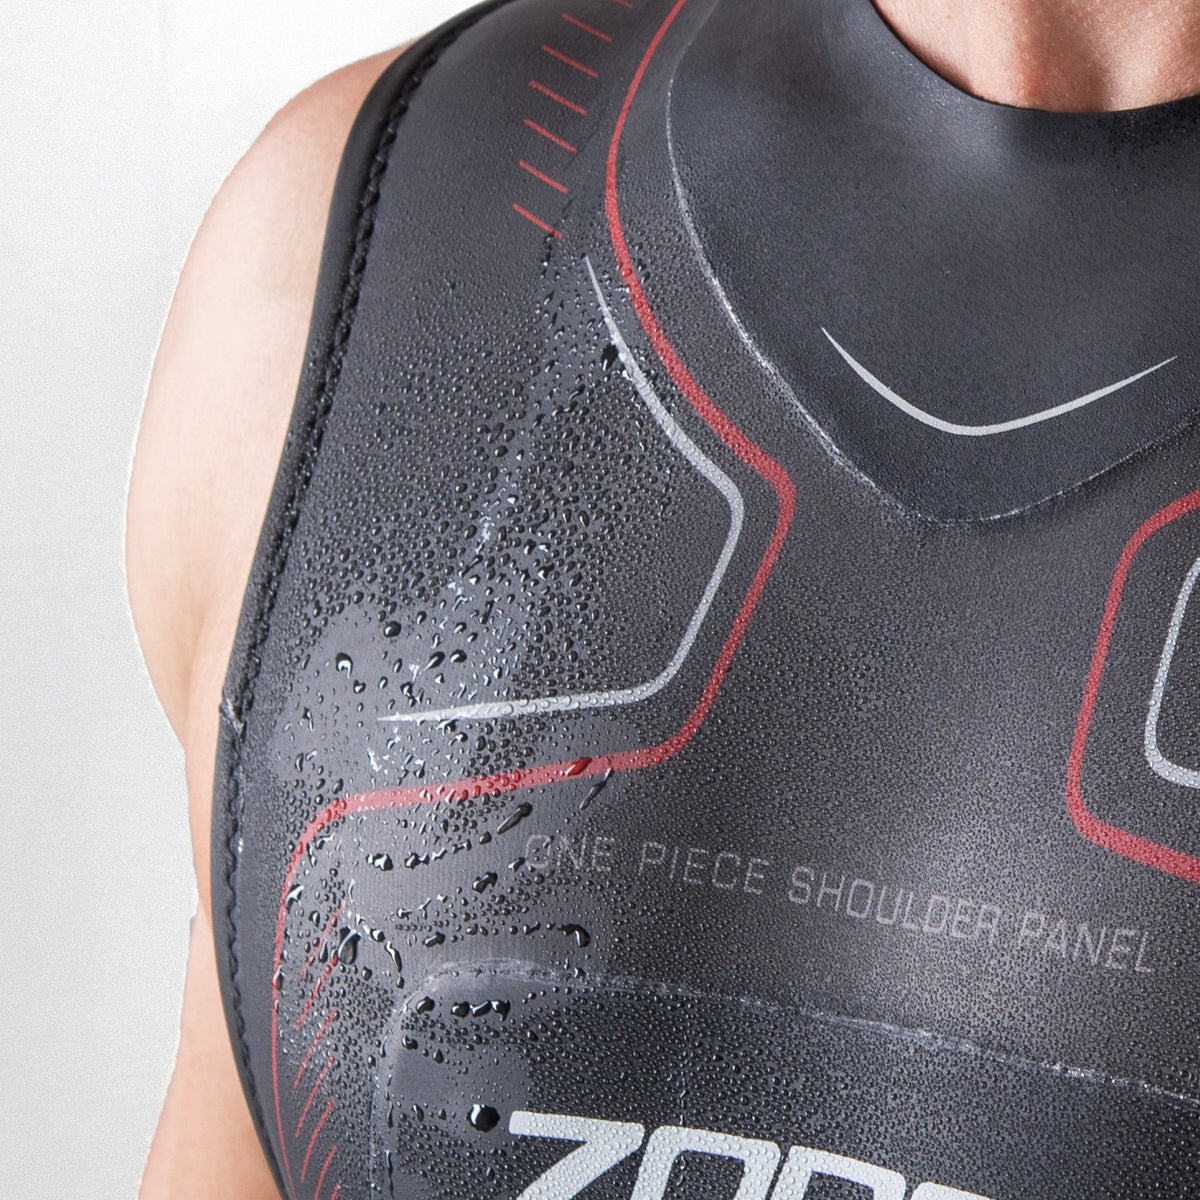 Men's Sleeveless Aspire Wetsuit chest